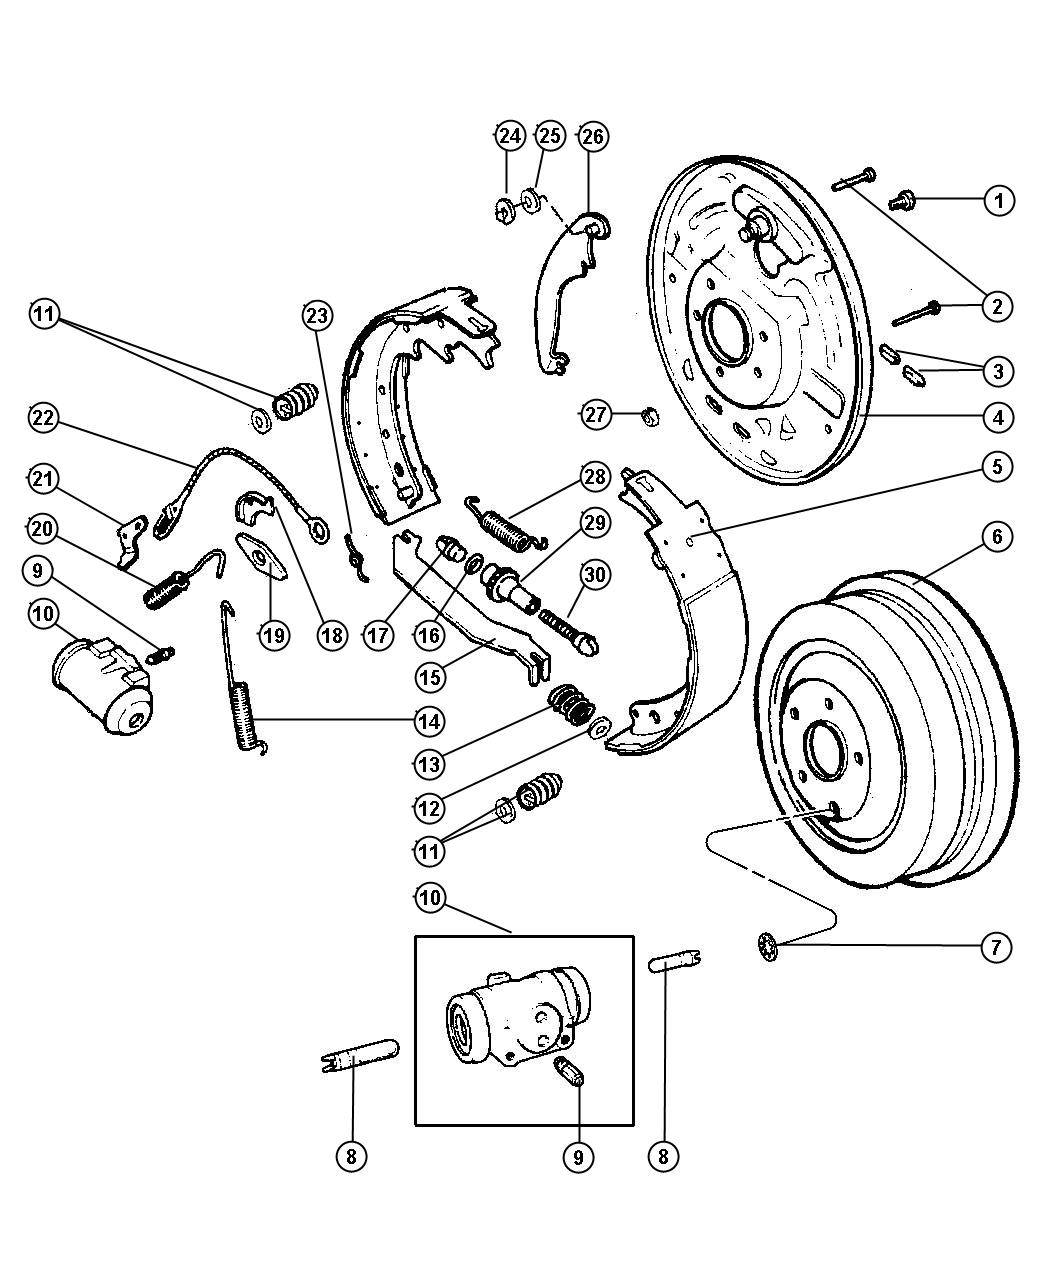 [2002 Jeep Liberty Brake Replacement System Diagram